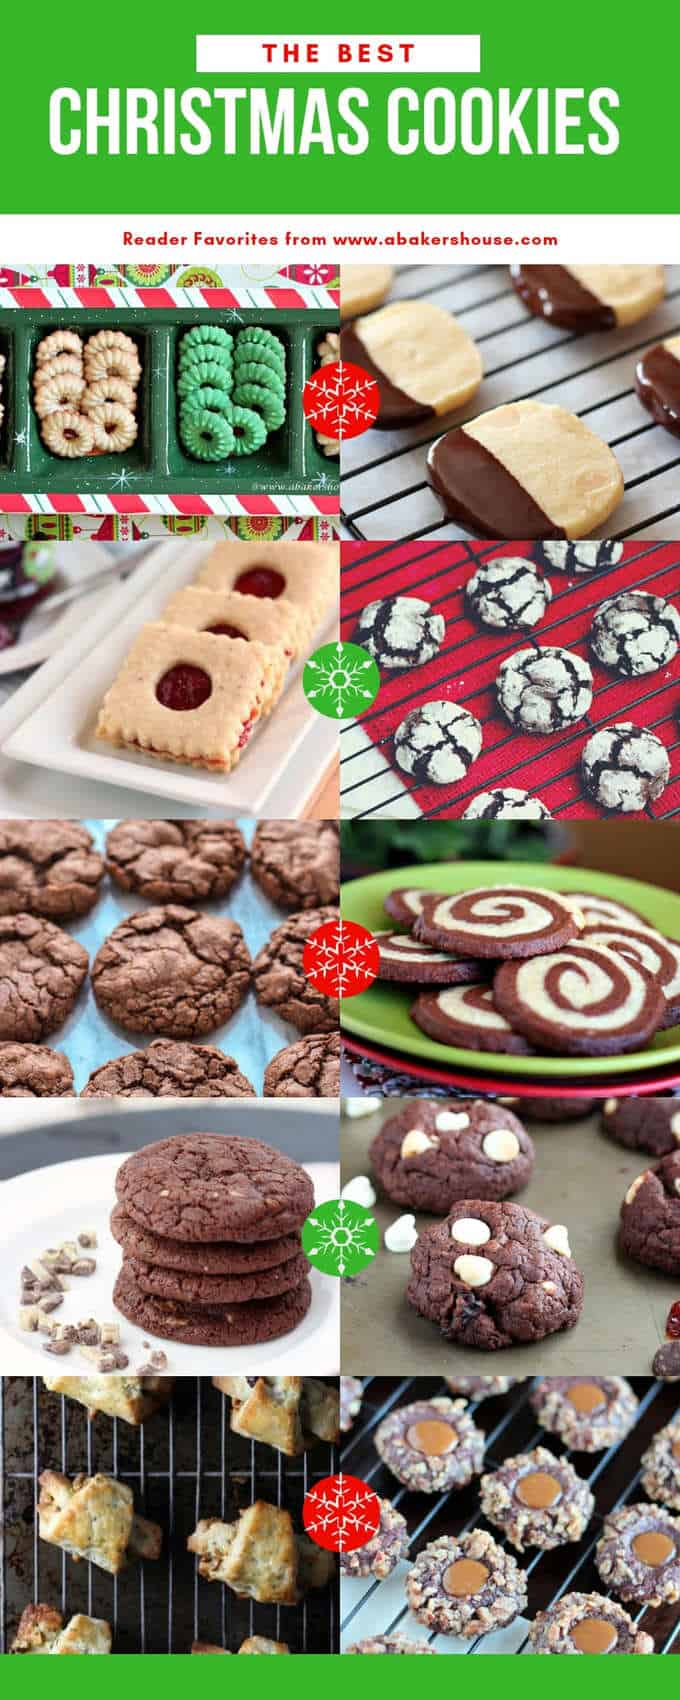 Collage of photos for Pinterest image of best christmas cookies